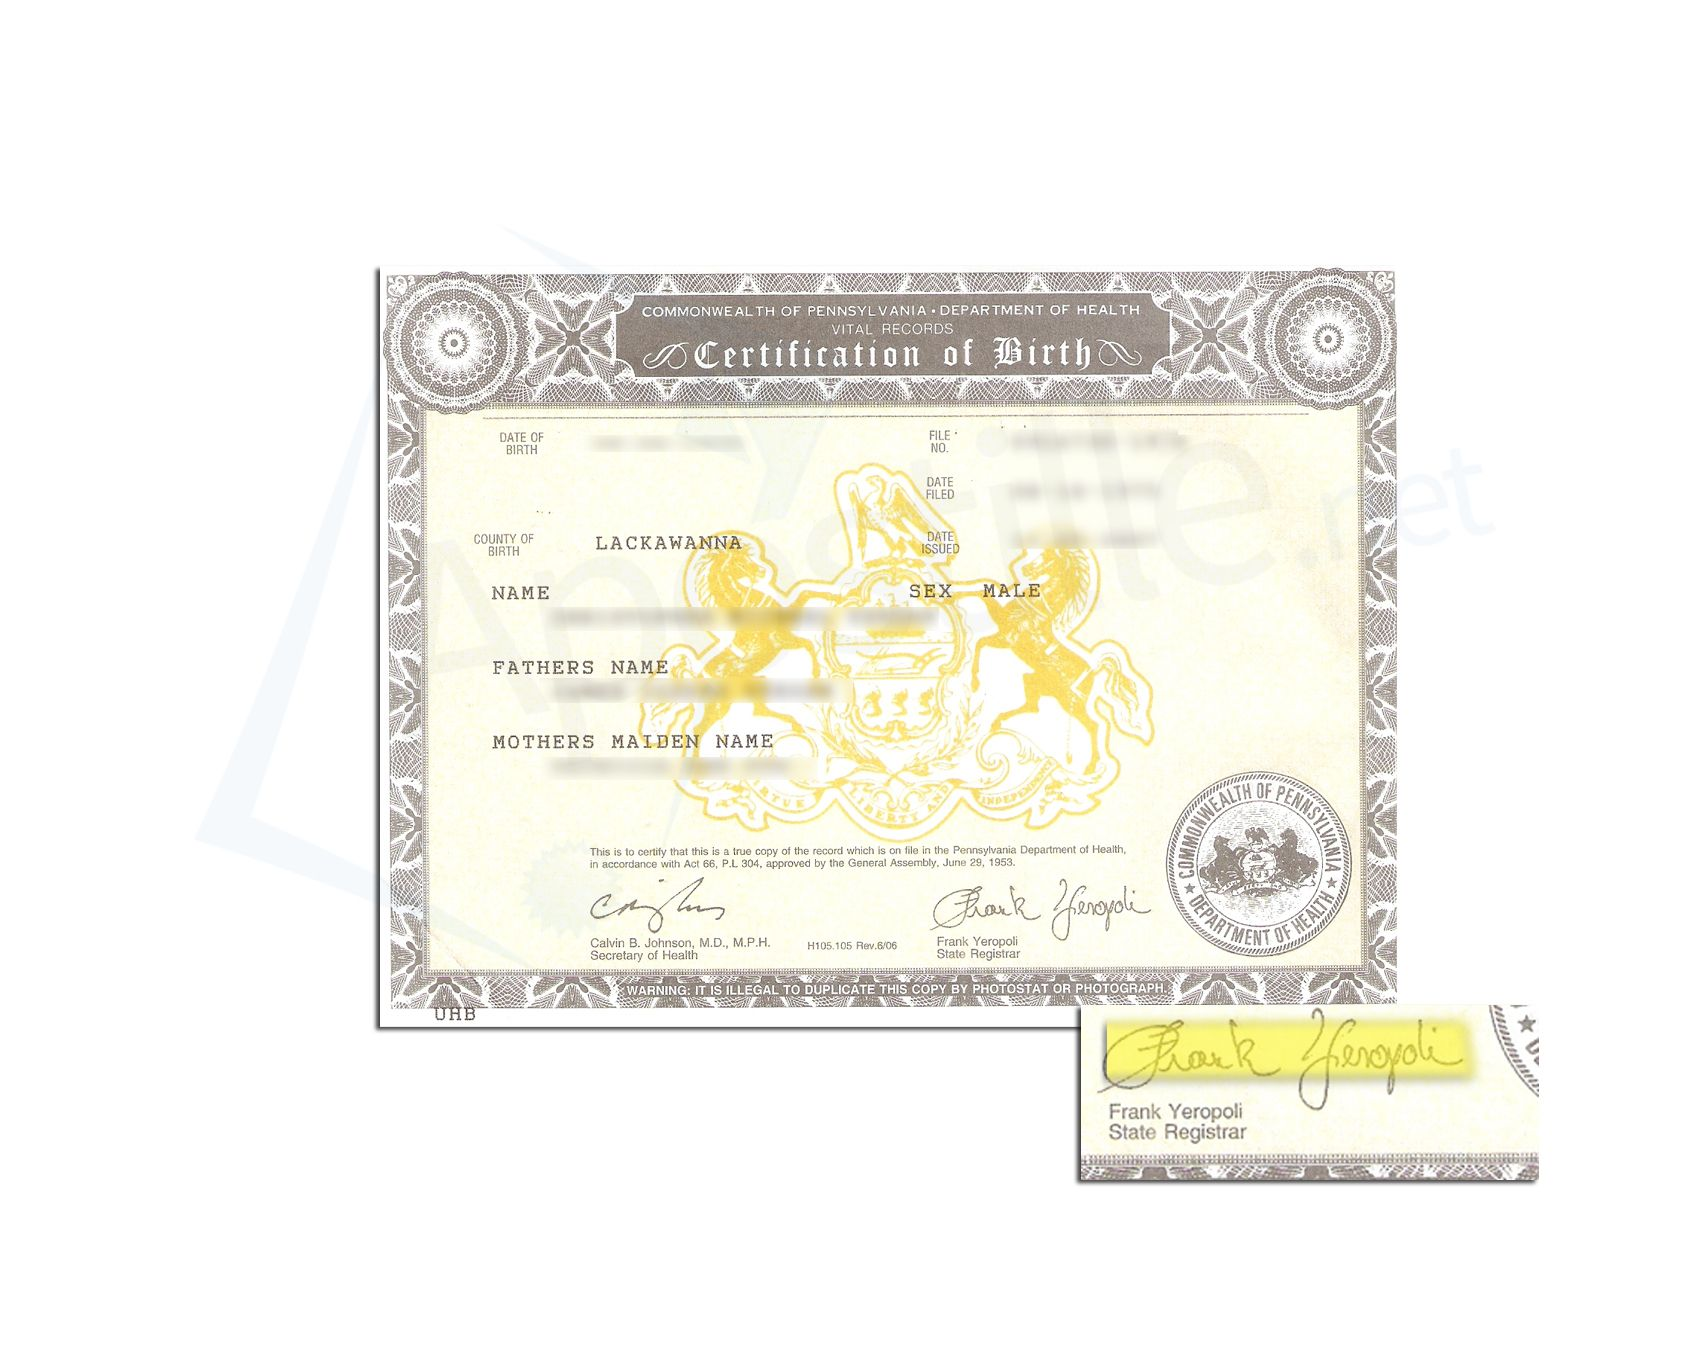 County Of Lackawanna State Of Pennsylvania Birth Certificate Issued